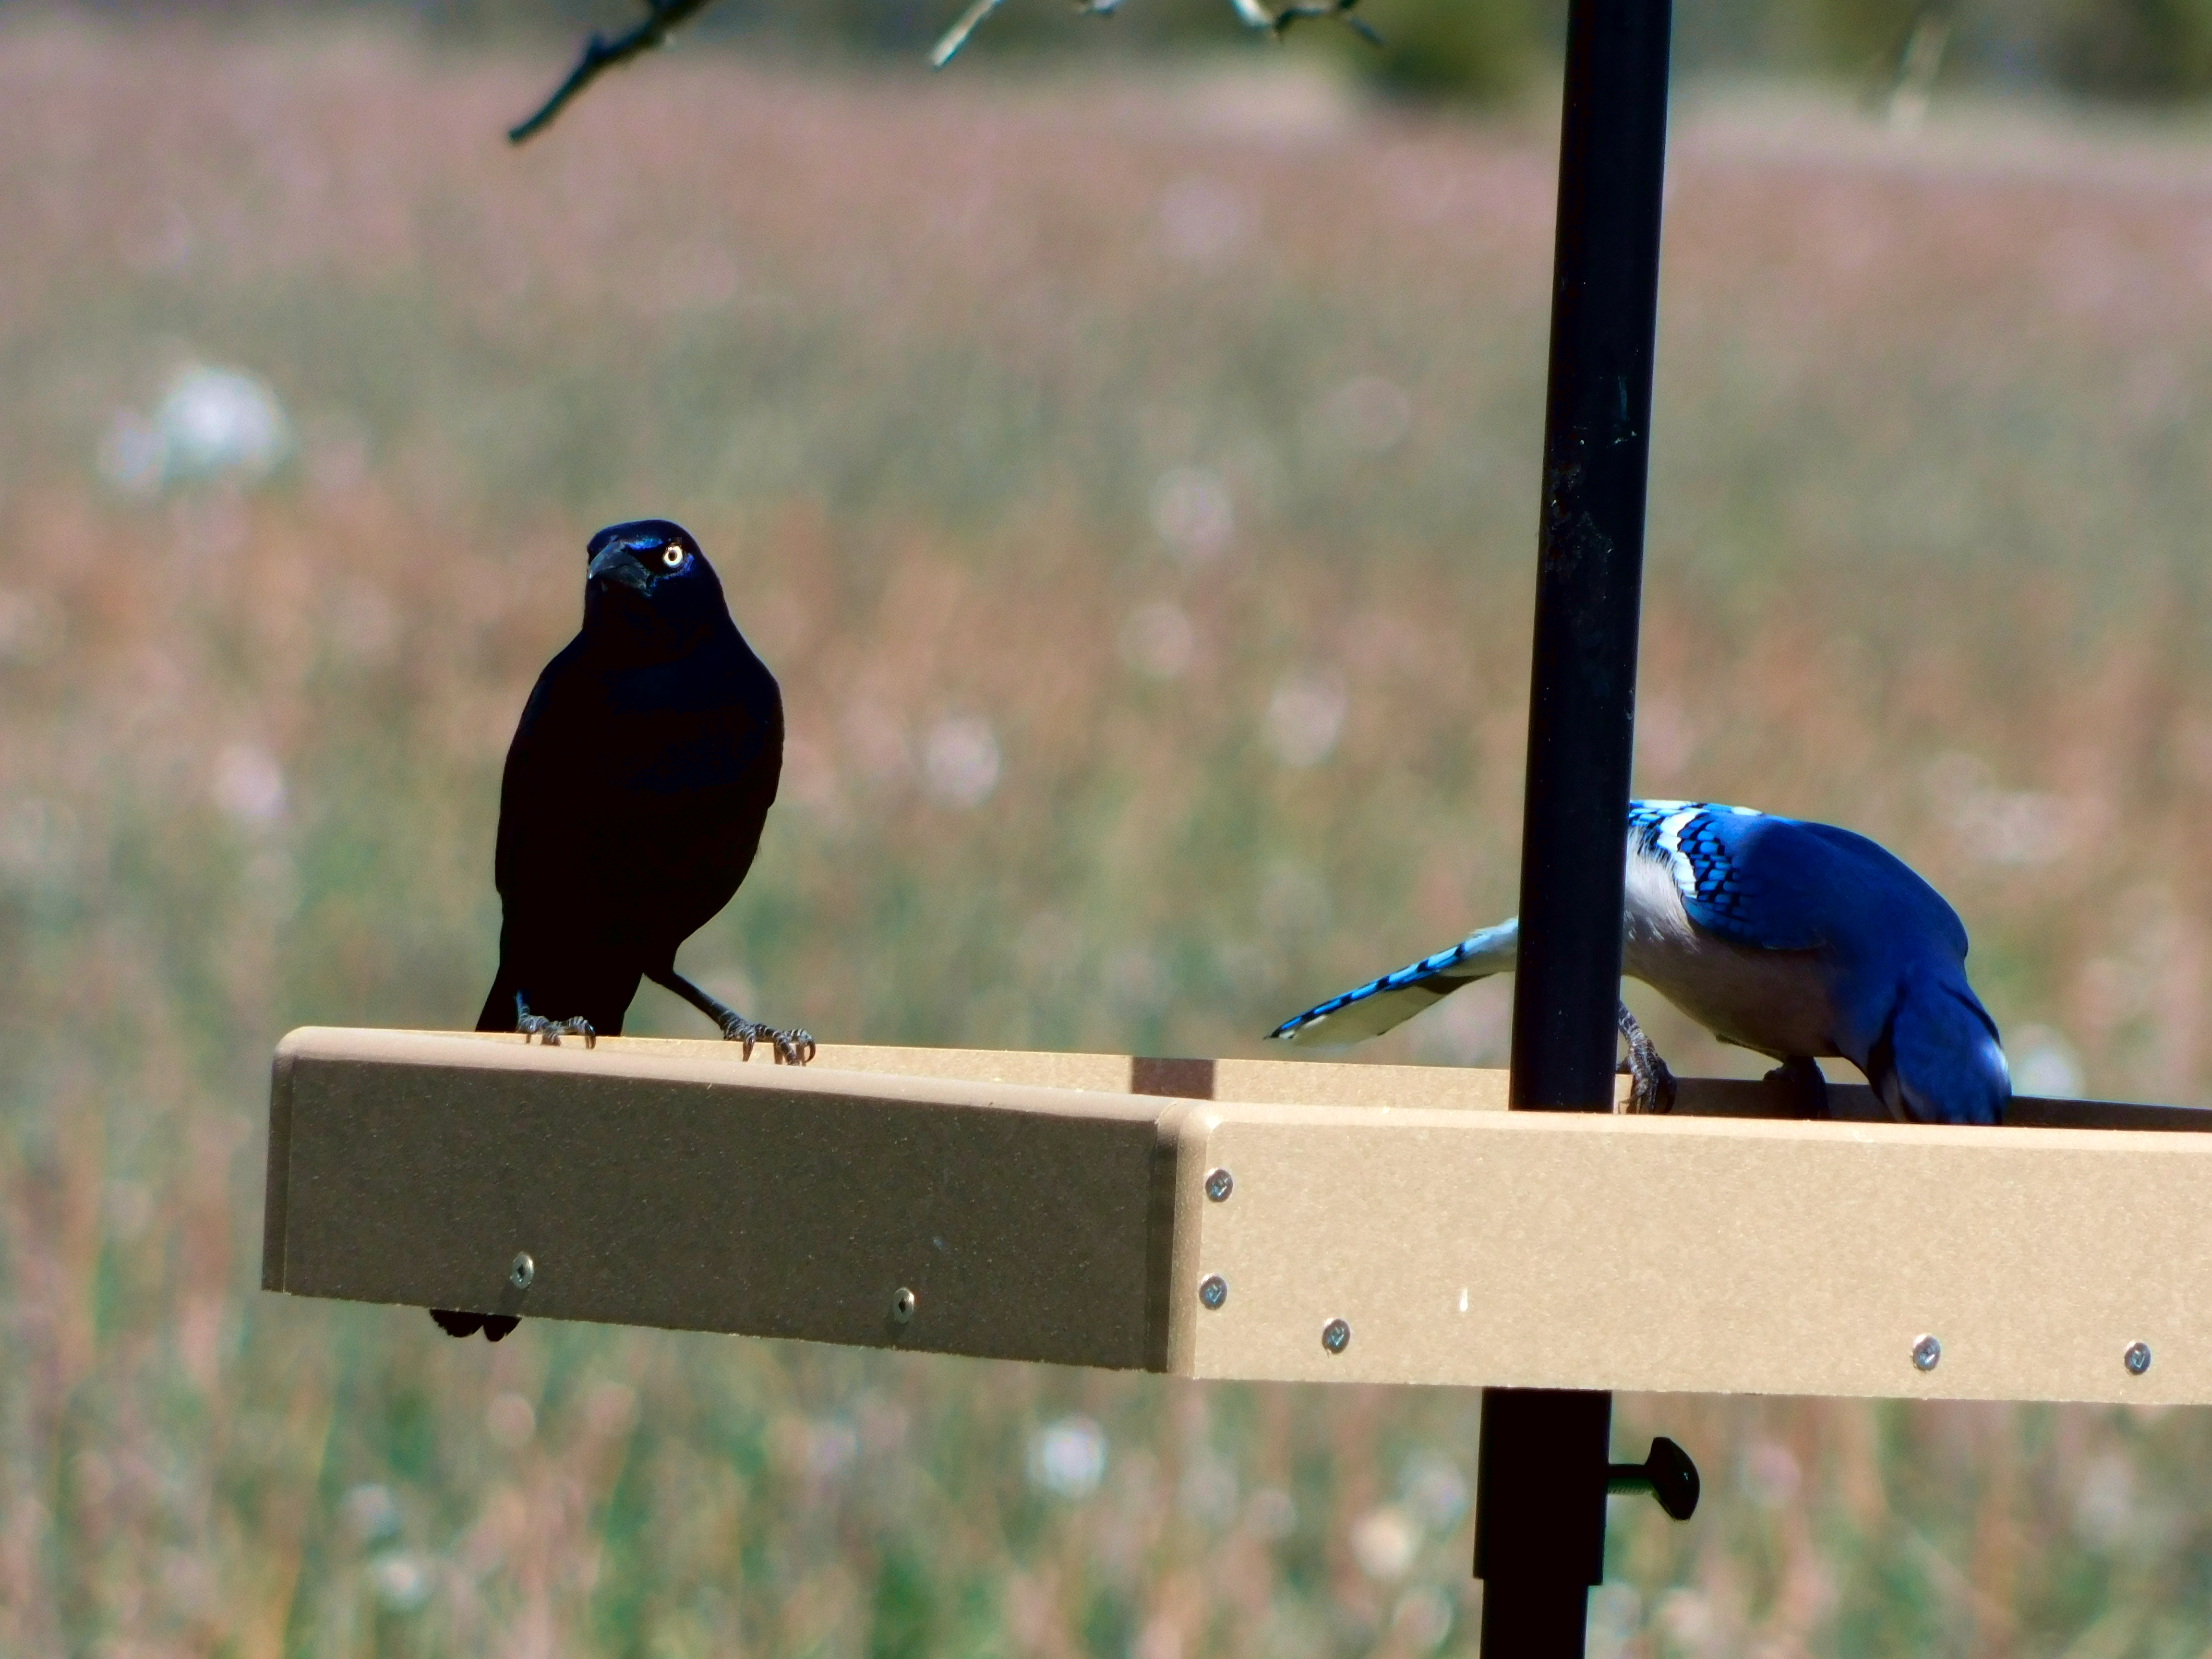 Common grackle and blue jay